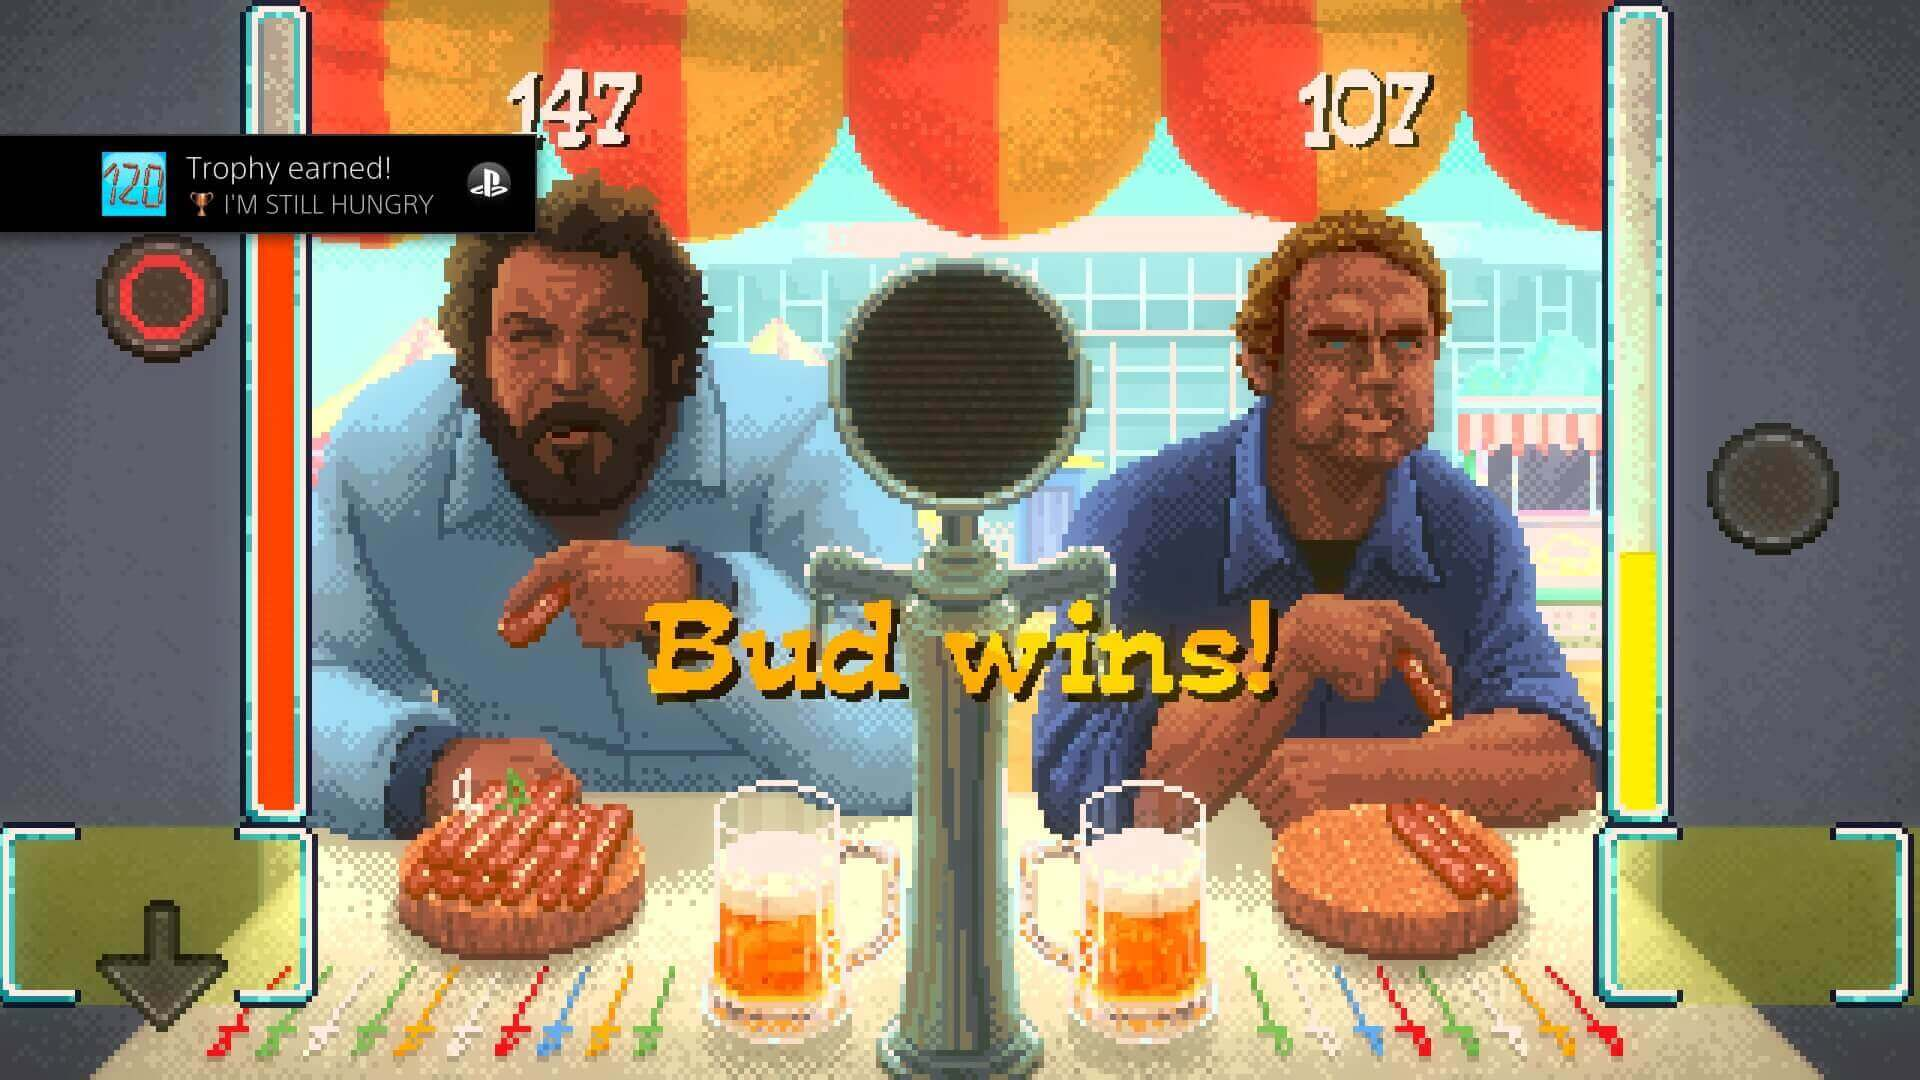 Bud Spencer & Terence Hill, Slaps and Beans, Delfos